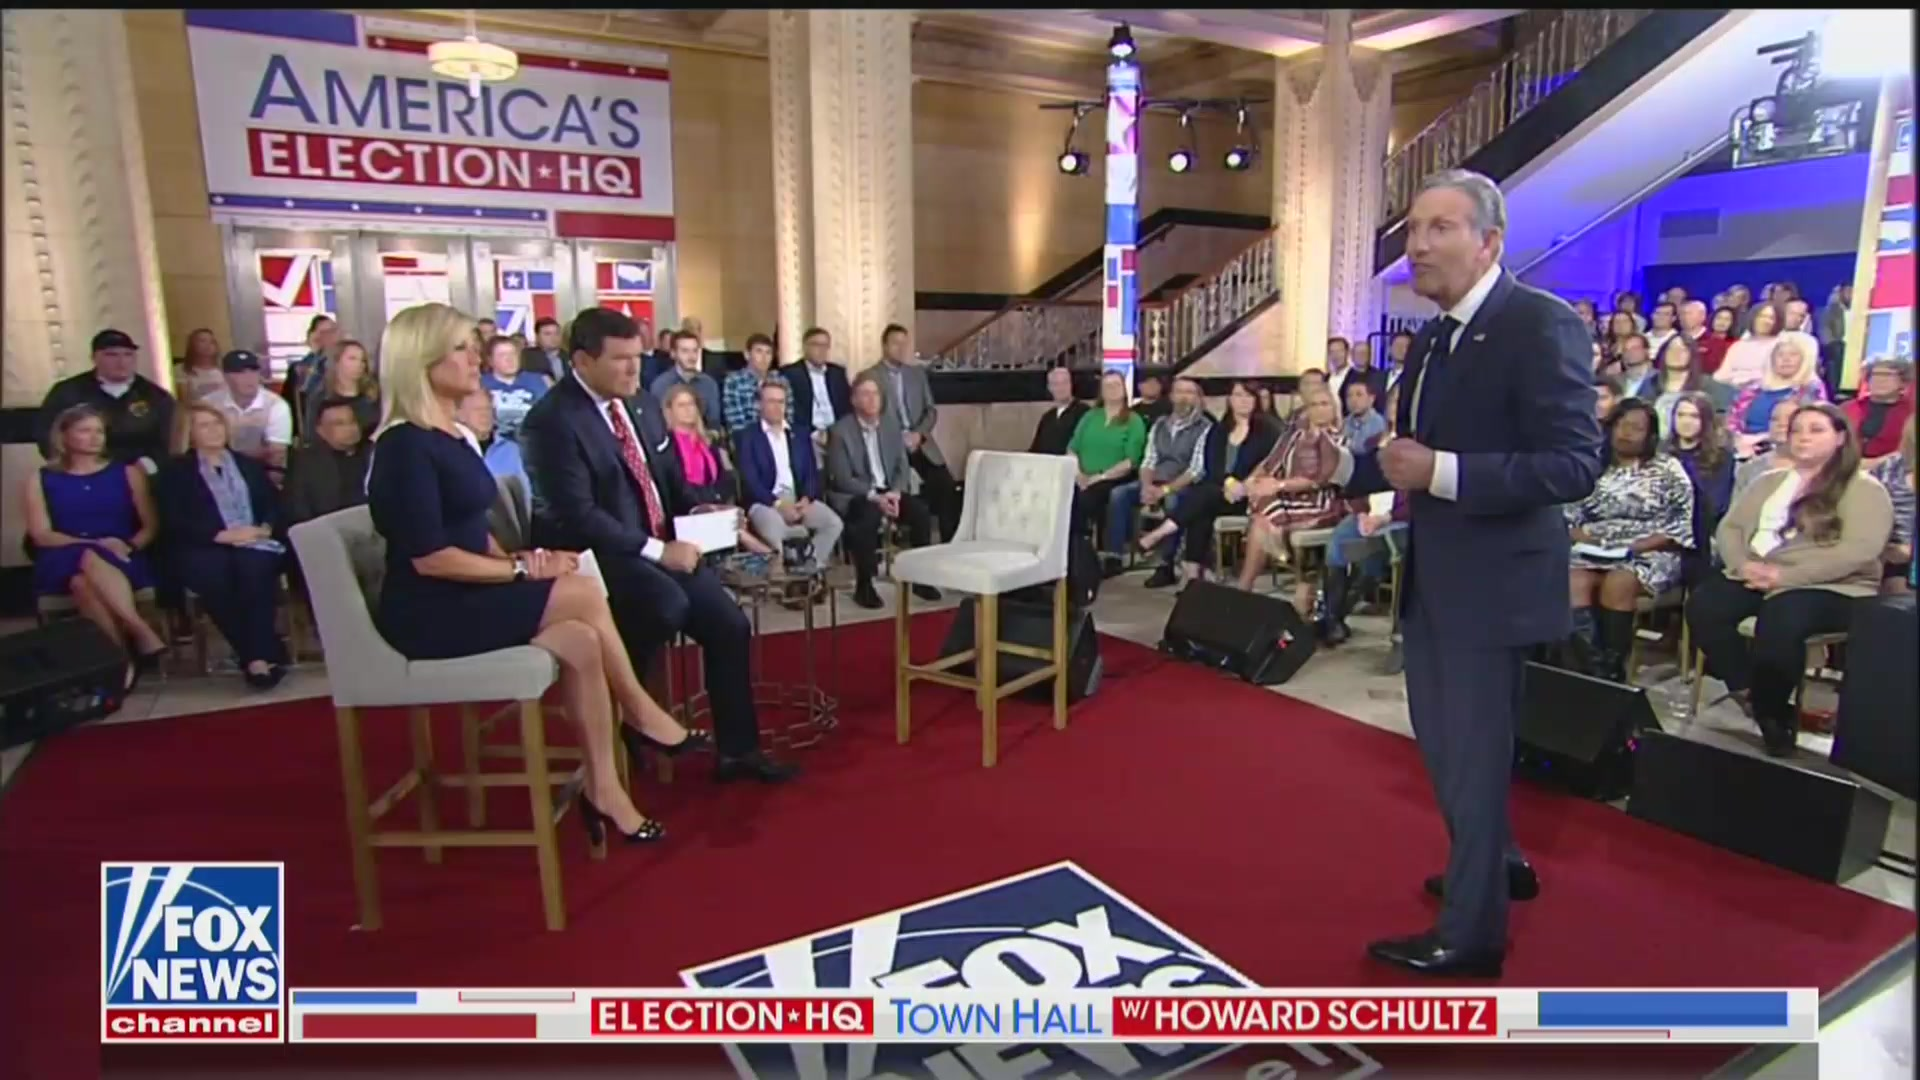 Howard Schultz Brutally Mocked For 'Empty Chair' Moment: 'It Worked So Well For Clint Eastwood'